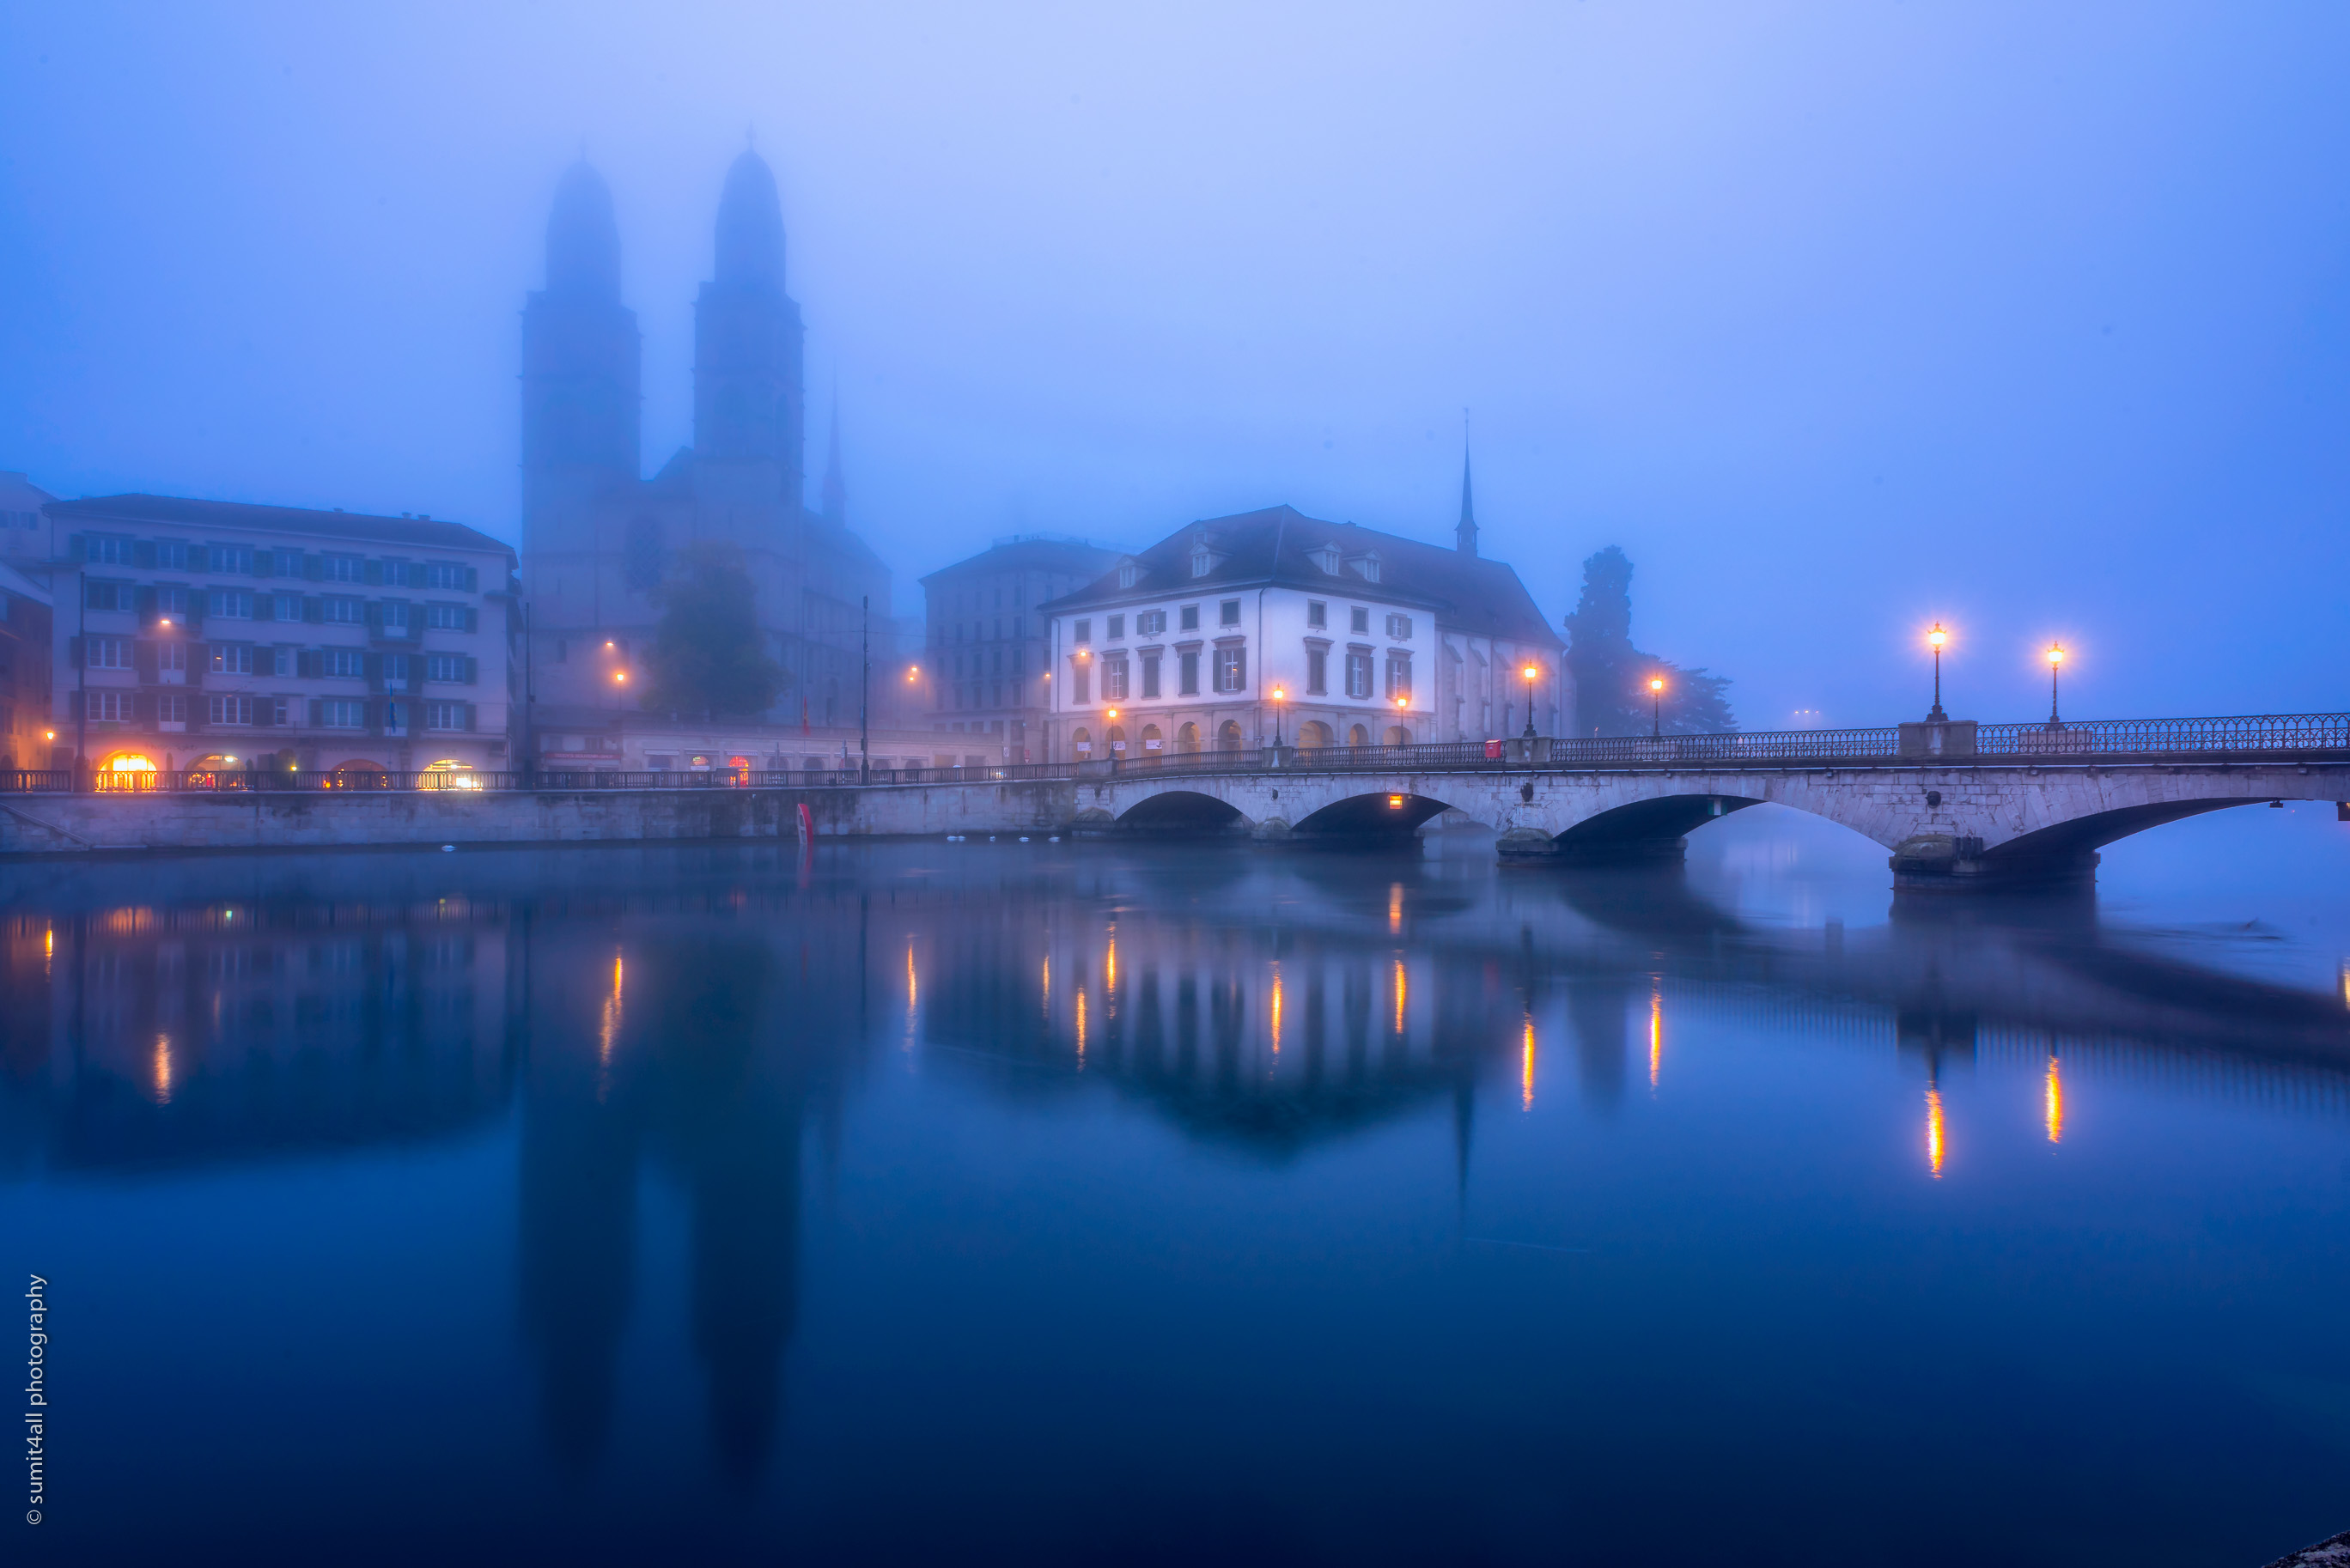 Early Morning Fog in Zurich